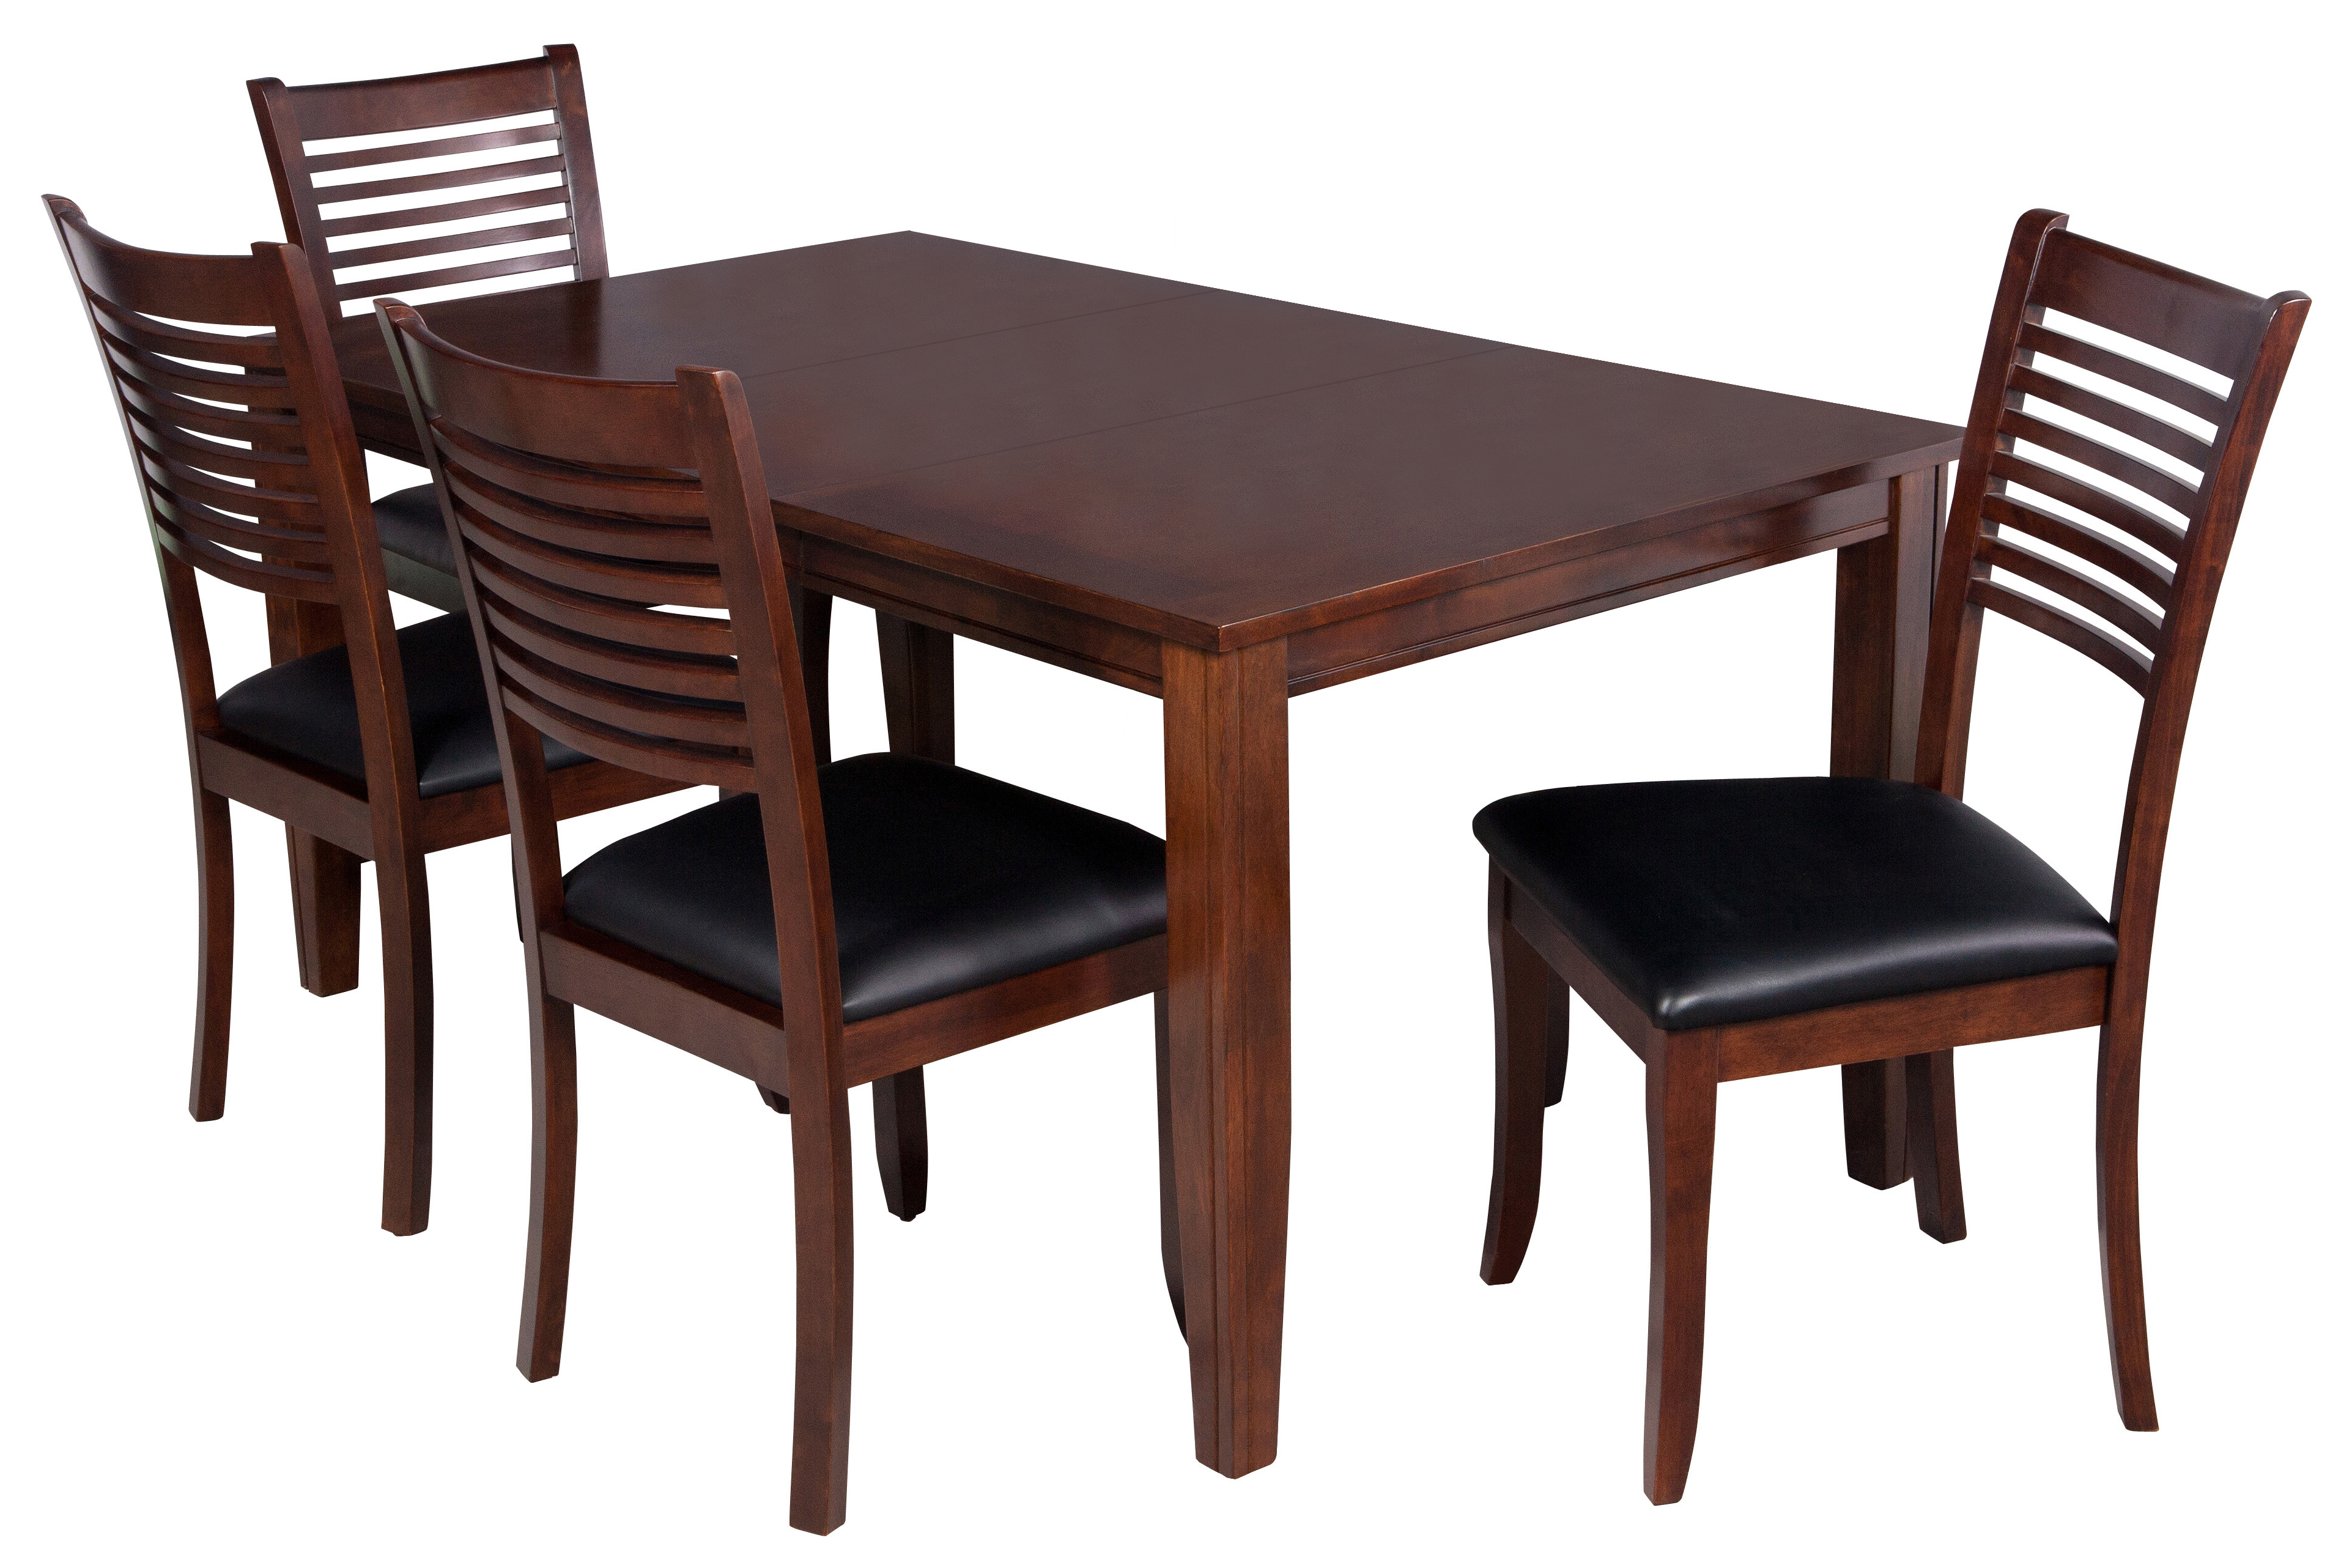 Ttp Furnish Within Well Liked Adan 5 Piece Solid Wood Dining Sets (Set Of 5) (View 23 of 25)